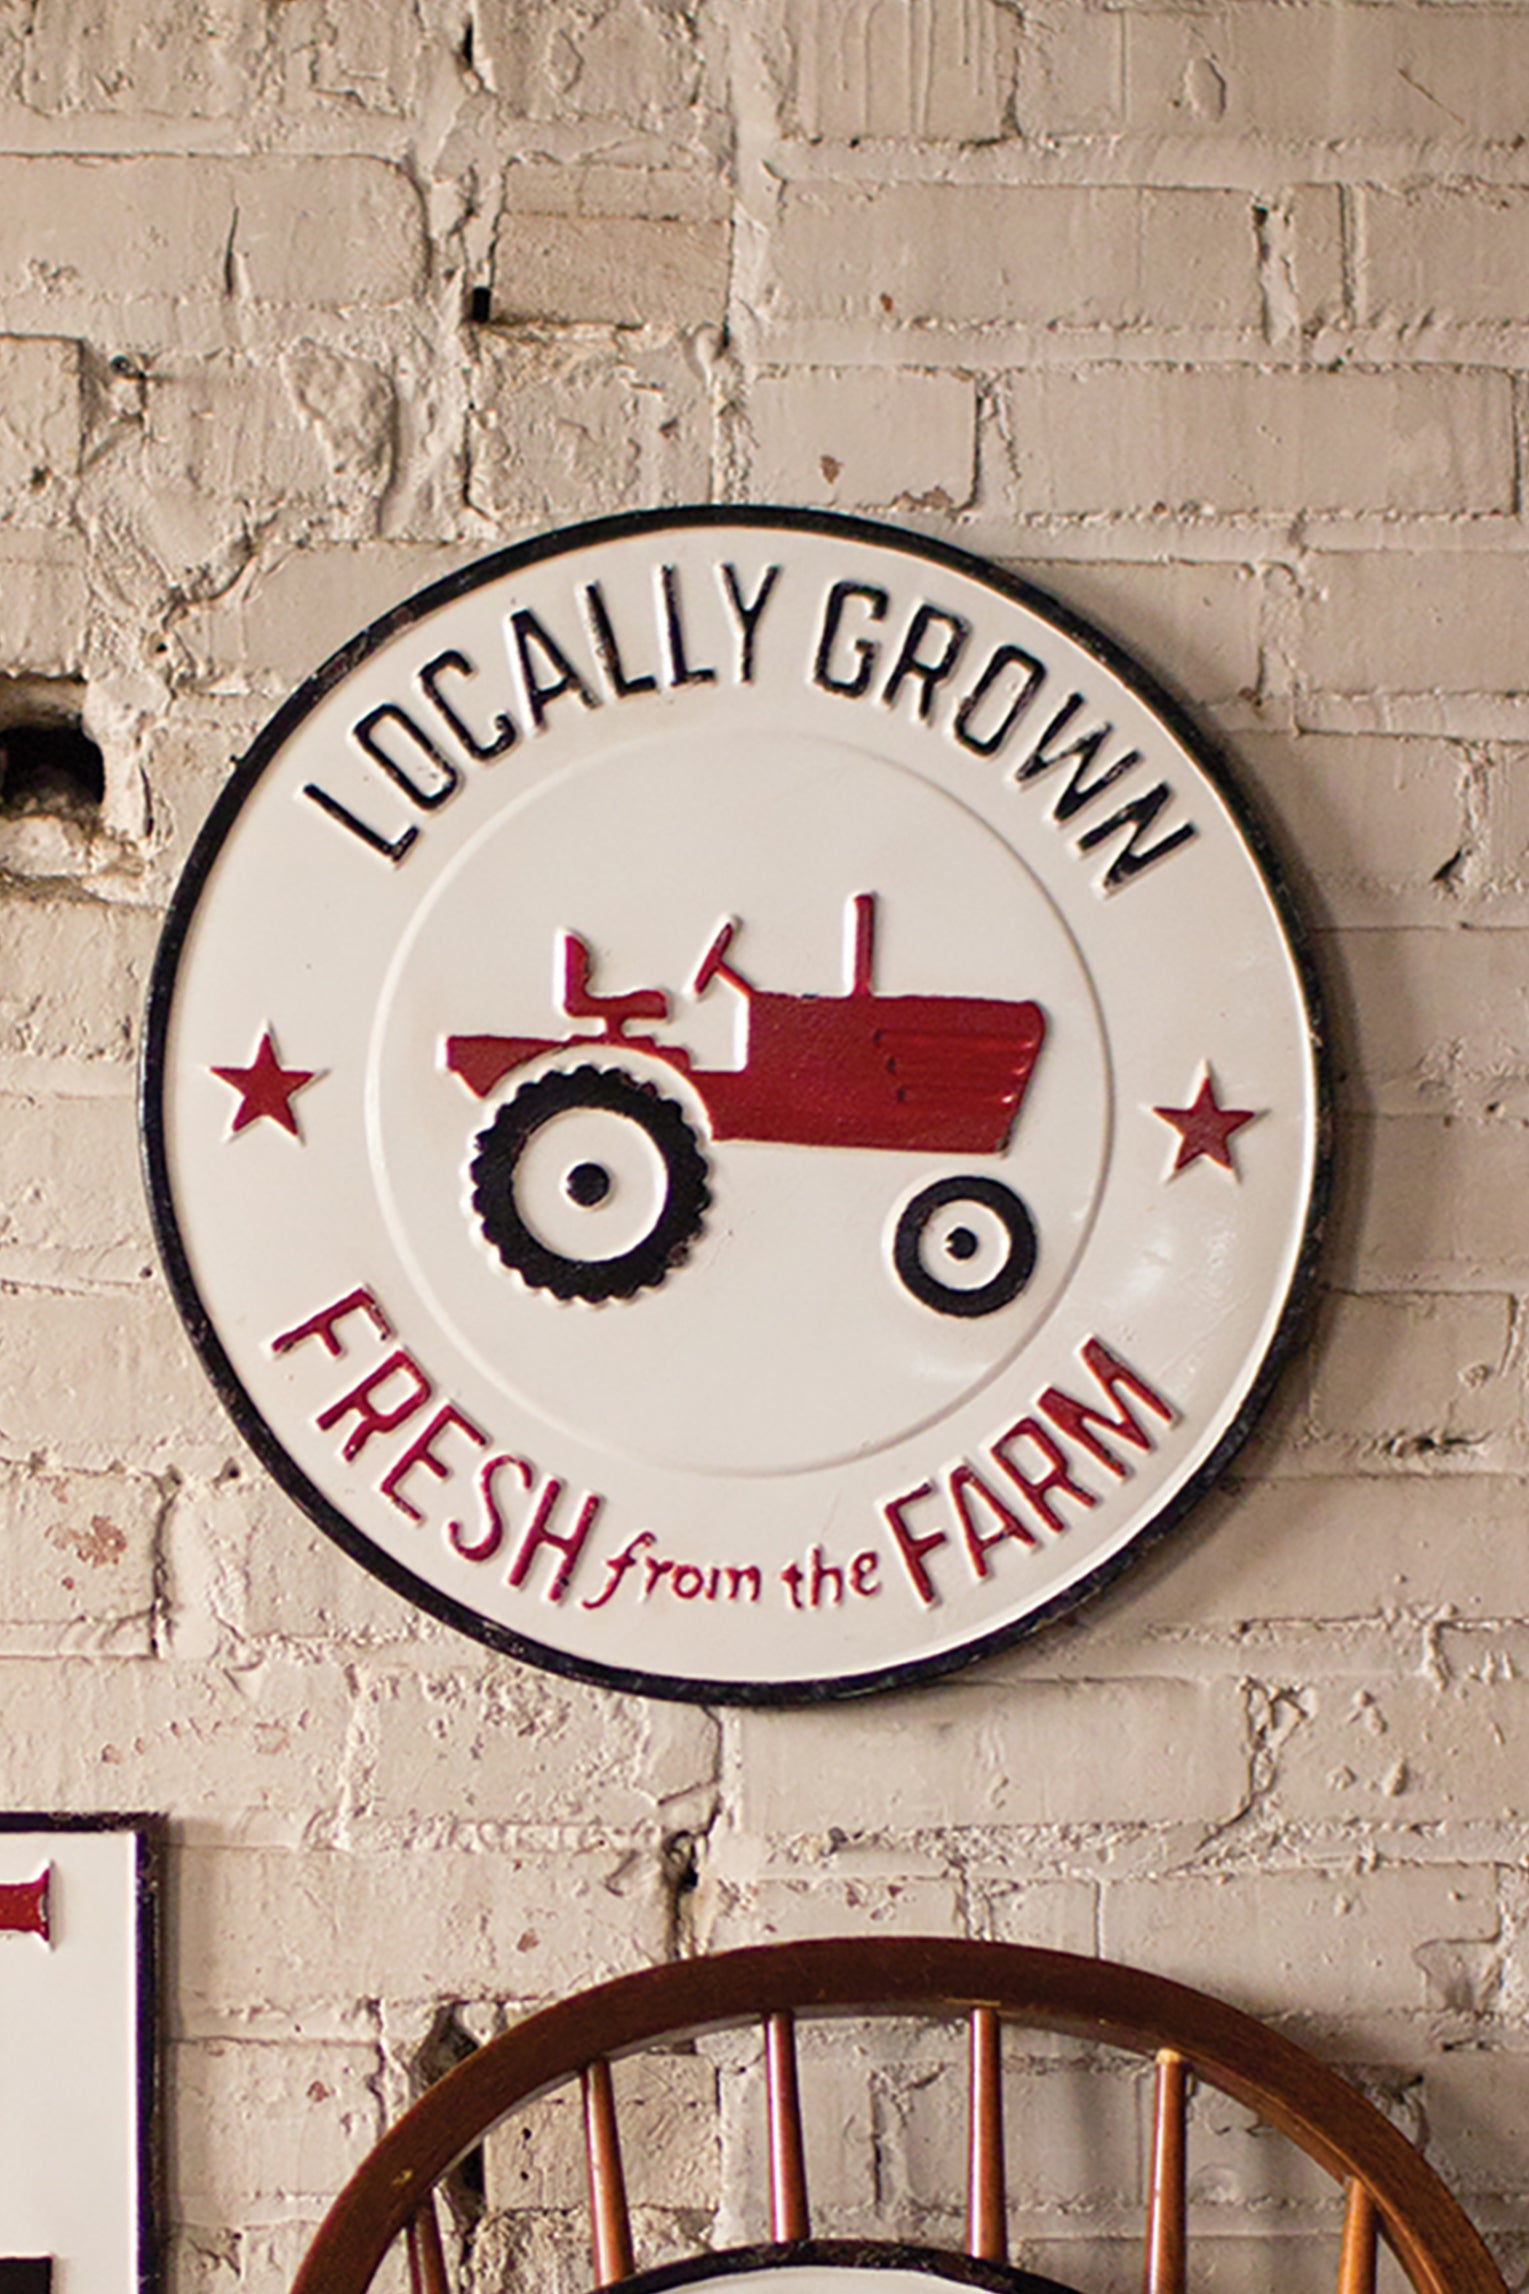 Vintage Style Painted Metal Locally Grown Farm Sign Wall Art Woodwaves